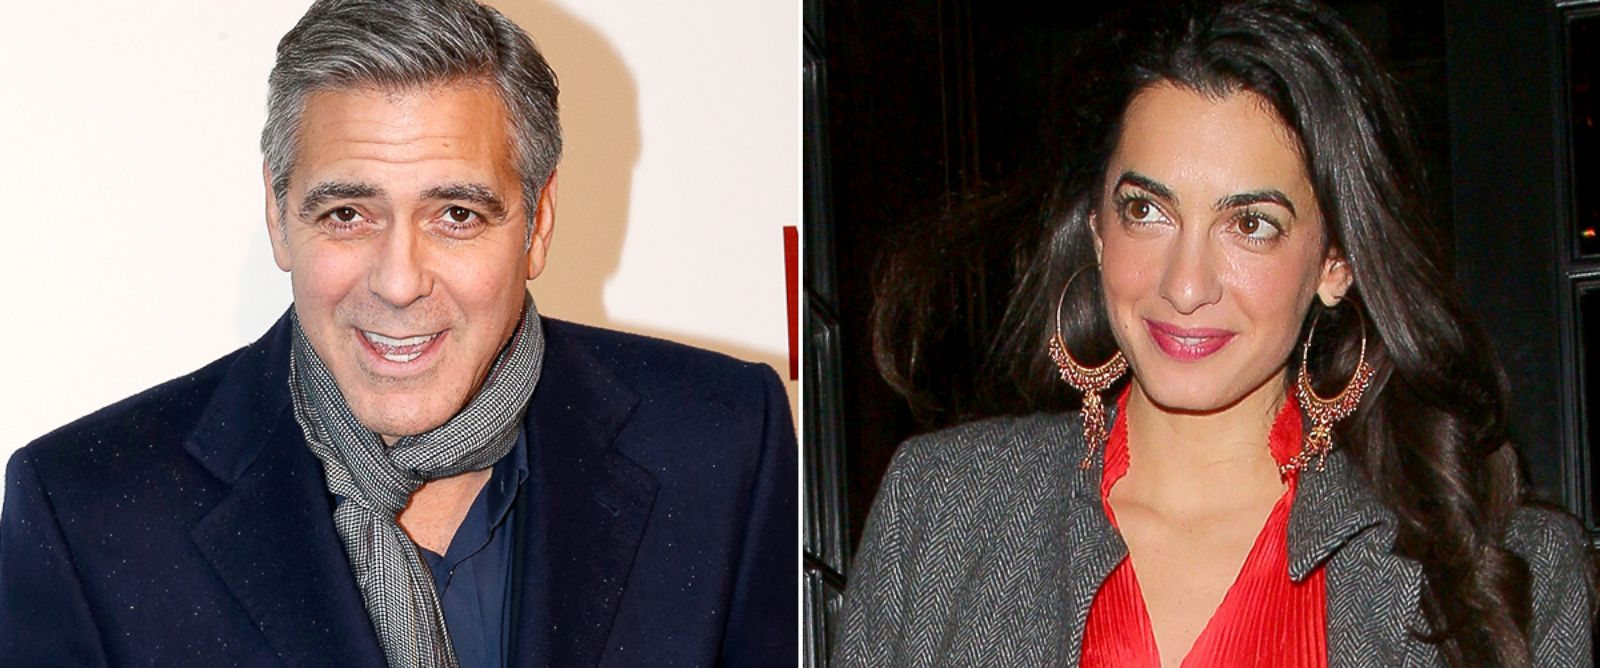 PHOTO: George Clooney, left, attends the Monuments Men premiere at Cinema UGC Normandie, Feb. 12, 2014, in Paris. Amal Alamuddin leaves Berners Tavern restaurant, Oct. 24, 2013, in London.